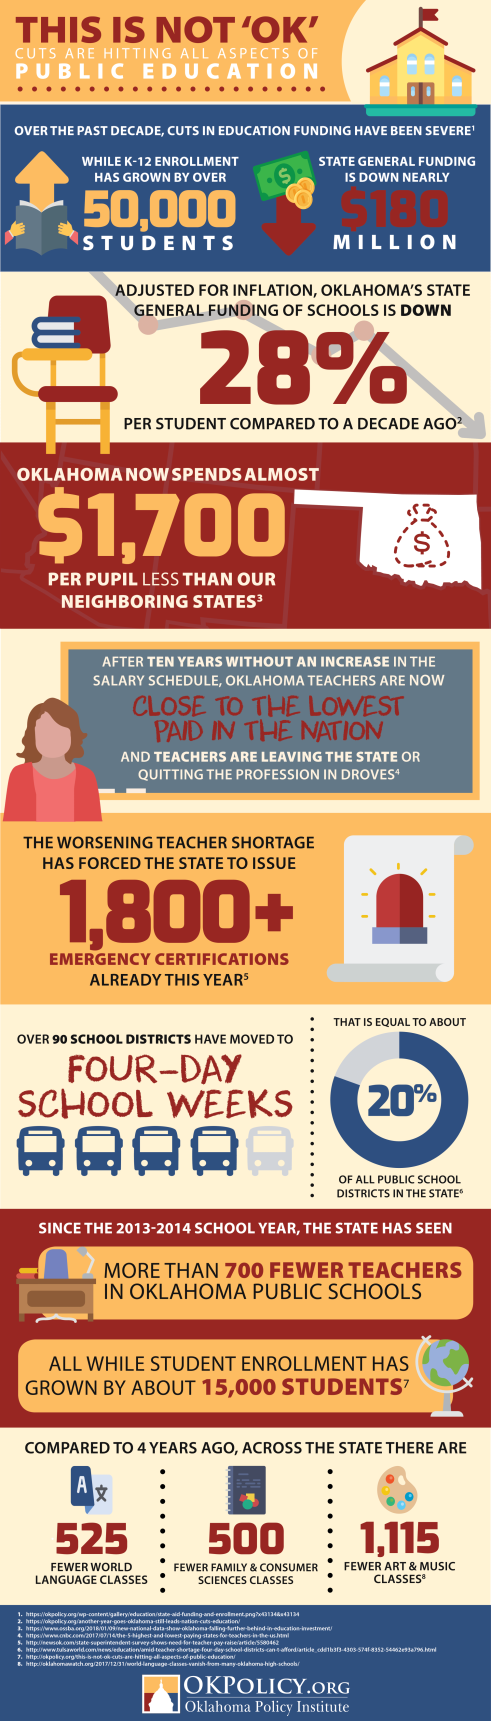 Infographic-Education-This-is-not-OK